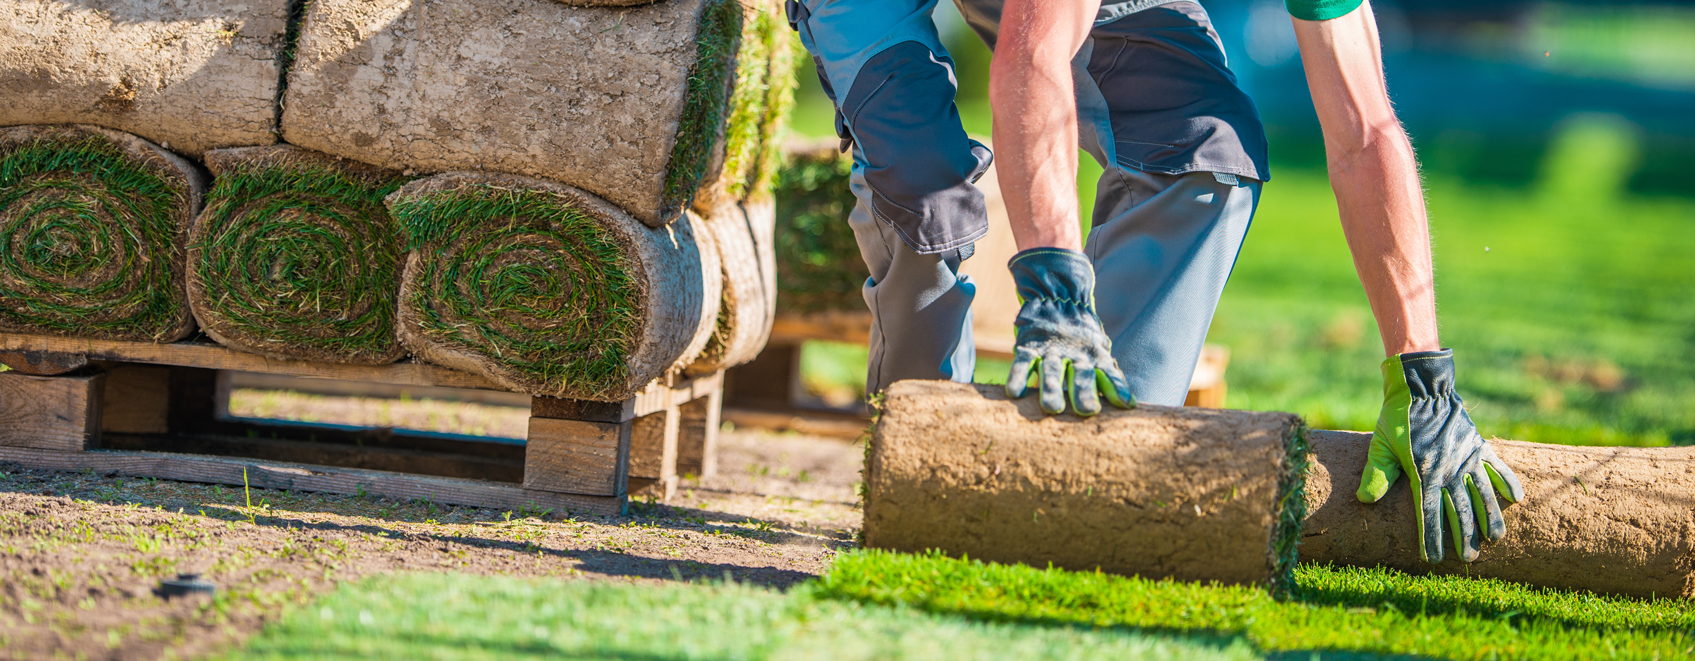 Worker rolling out sod.